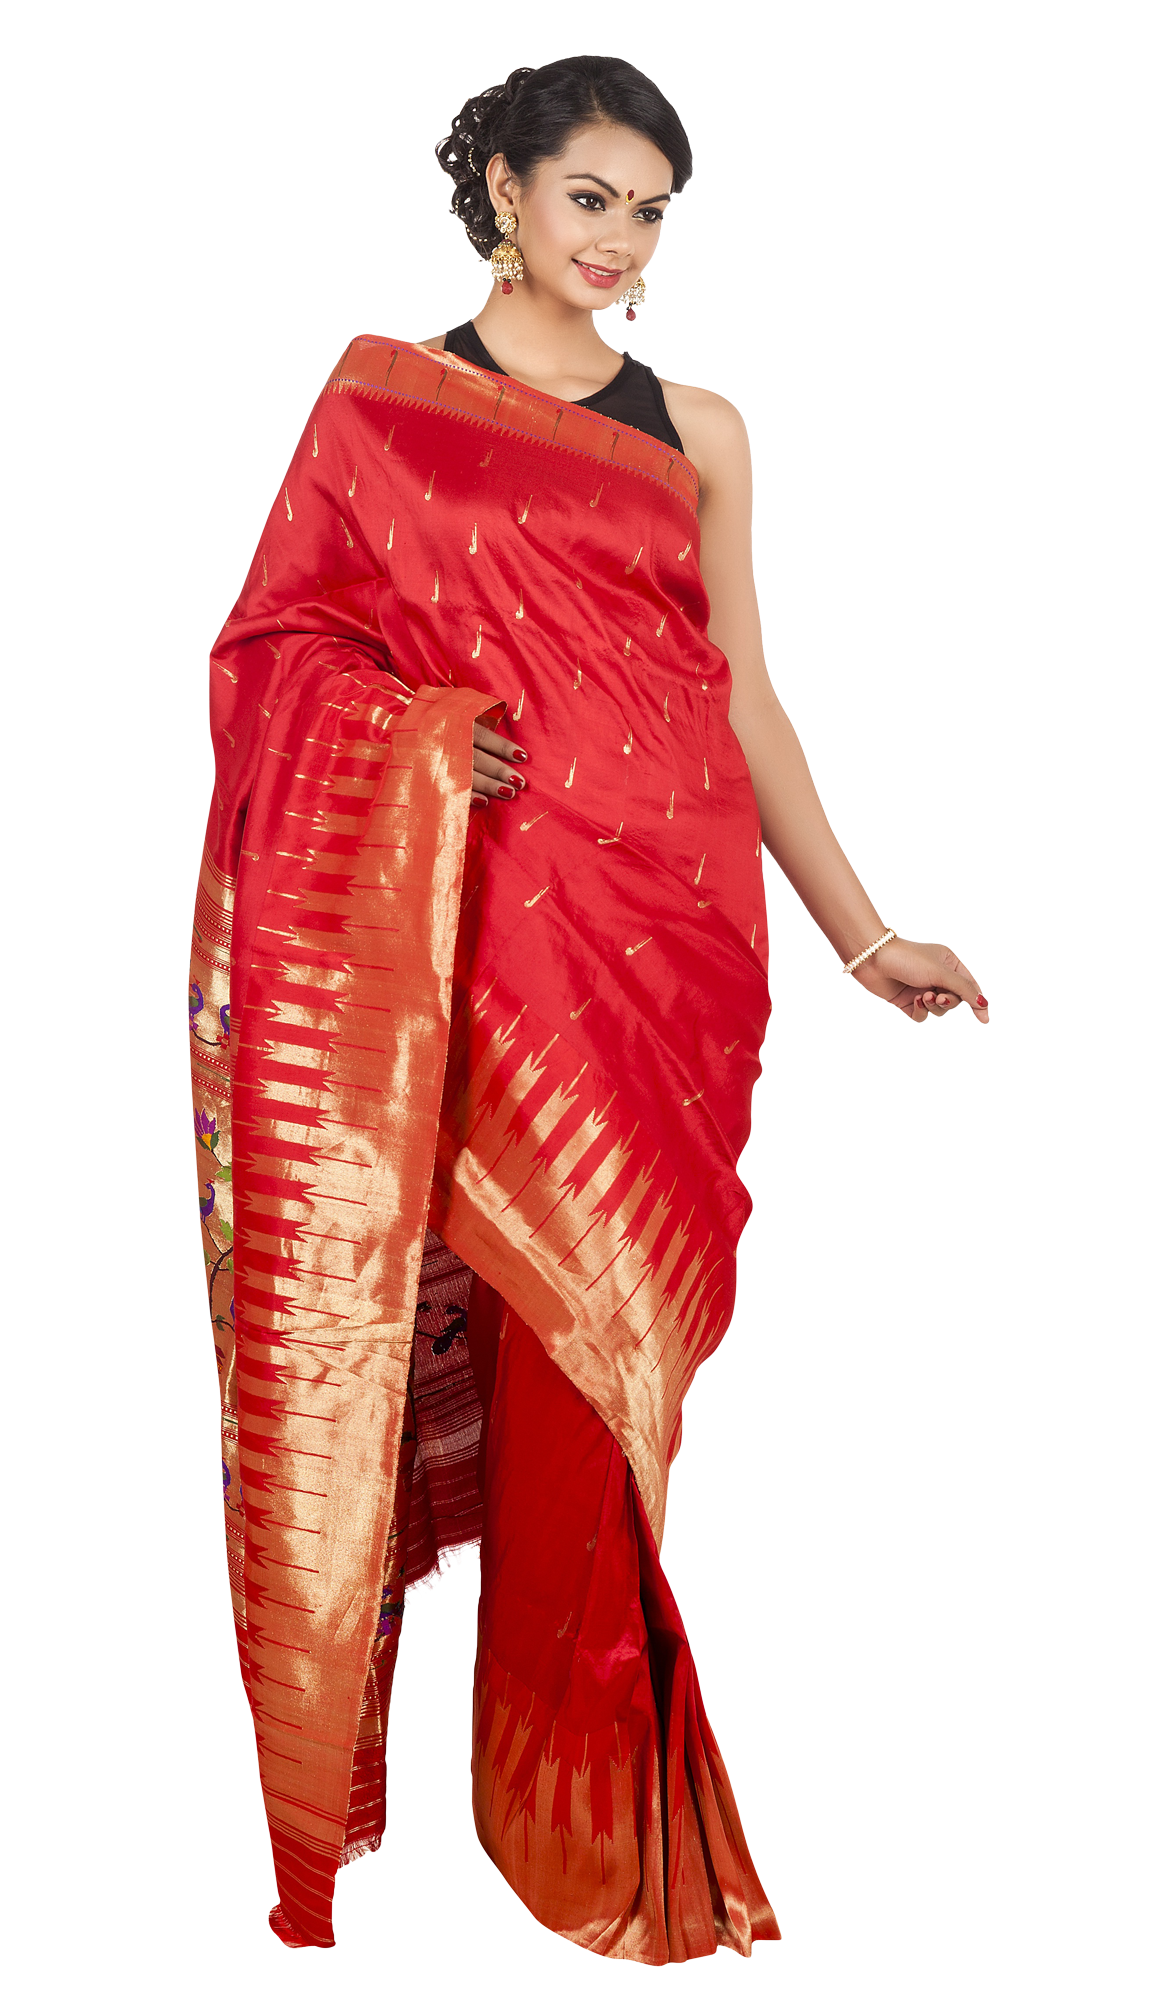 Wedding saree png transparent. Suit clipart lady suit